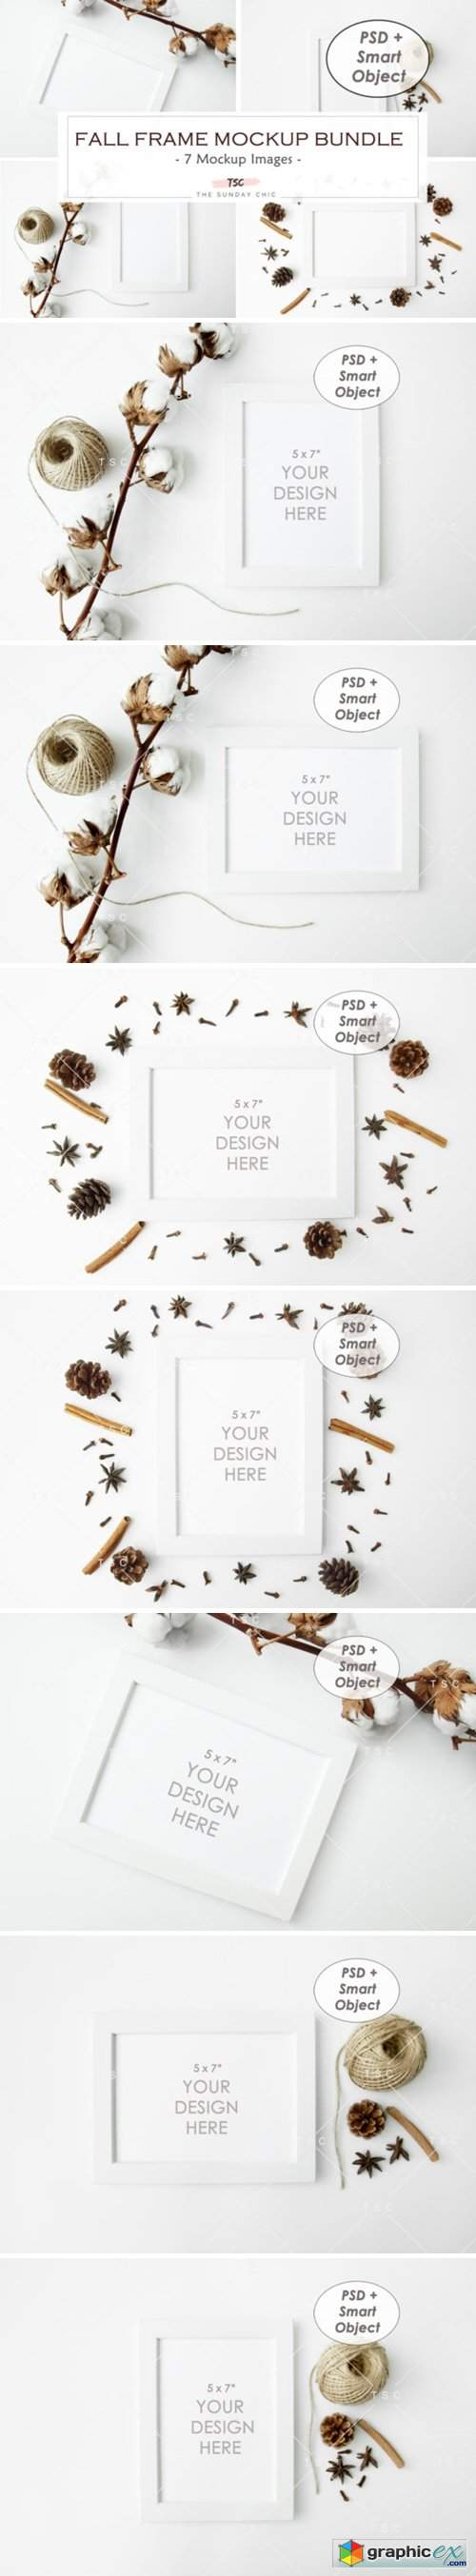 Fall Frame Mockup Bundle